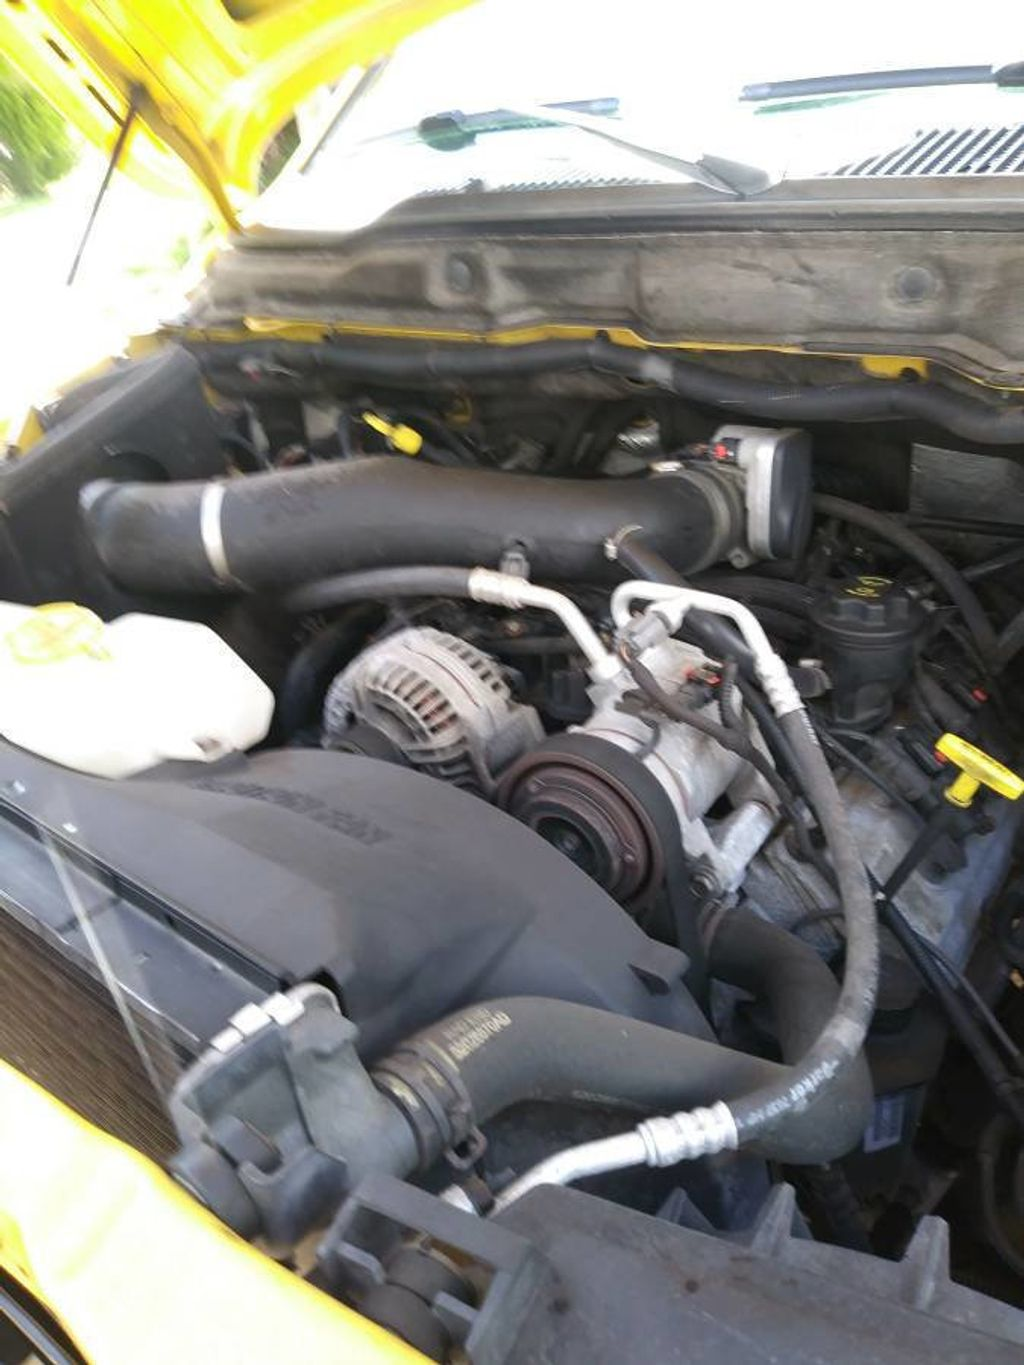 2005 Dodge Ram 1500 Rumble Bee Limited Edition For Sale - 17386933 - 16